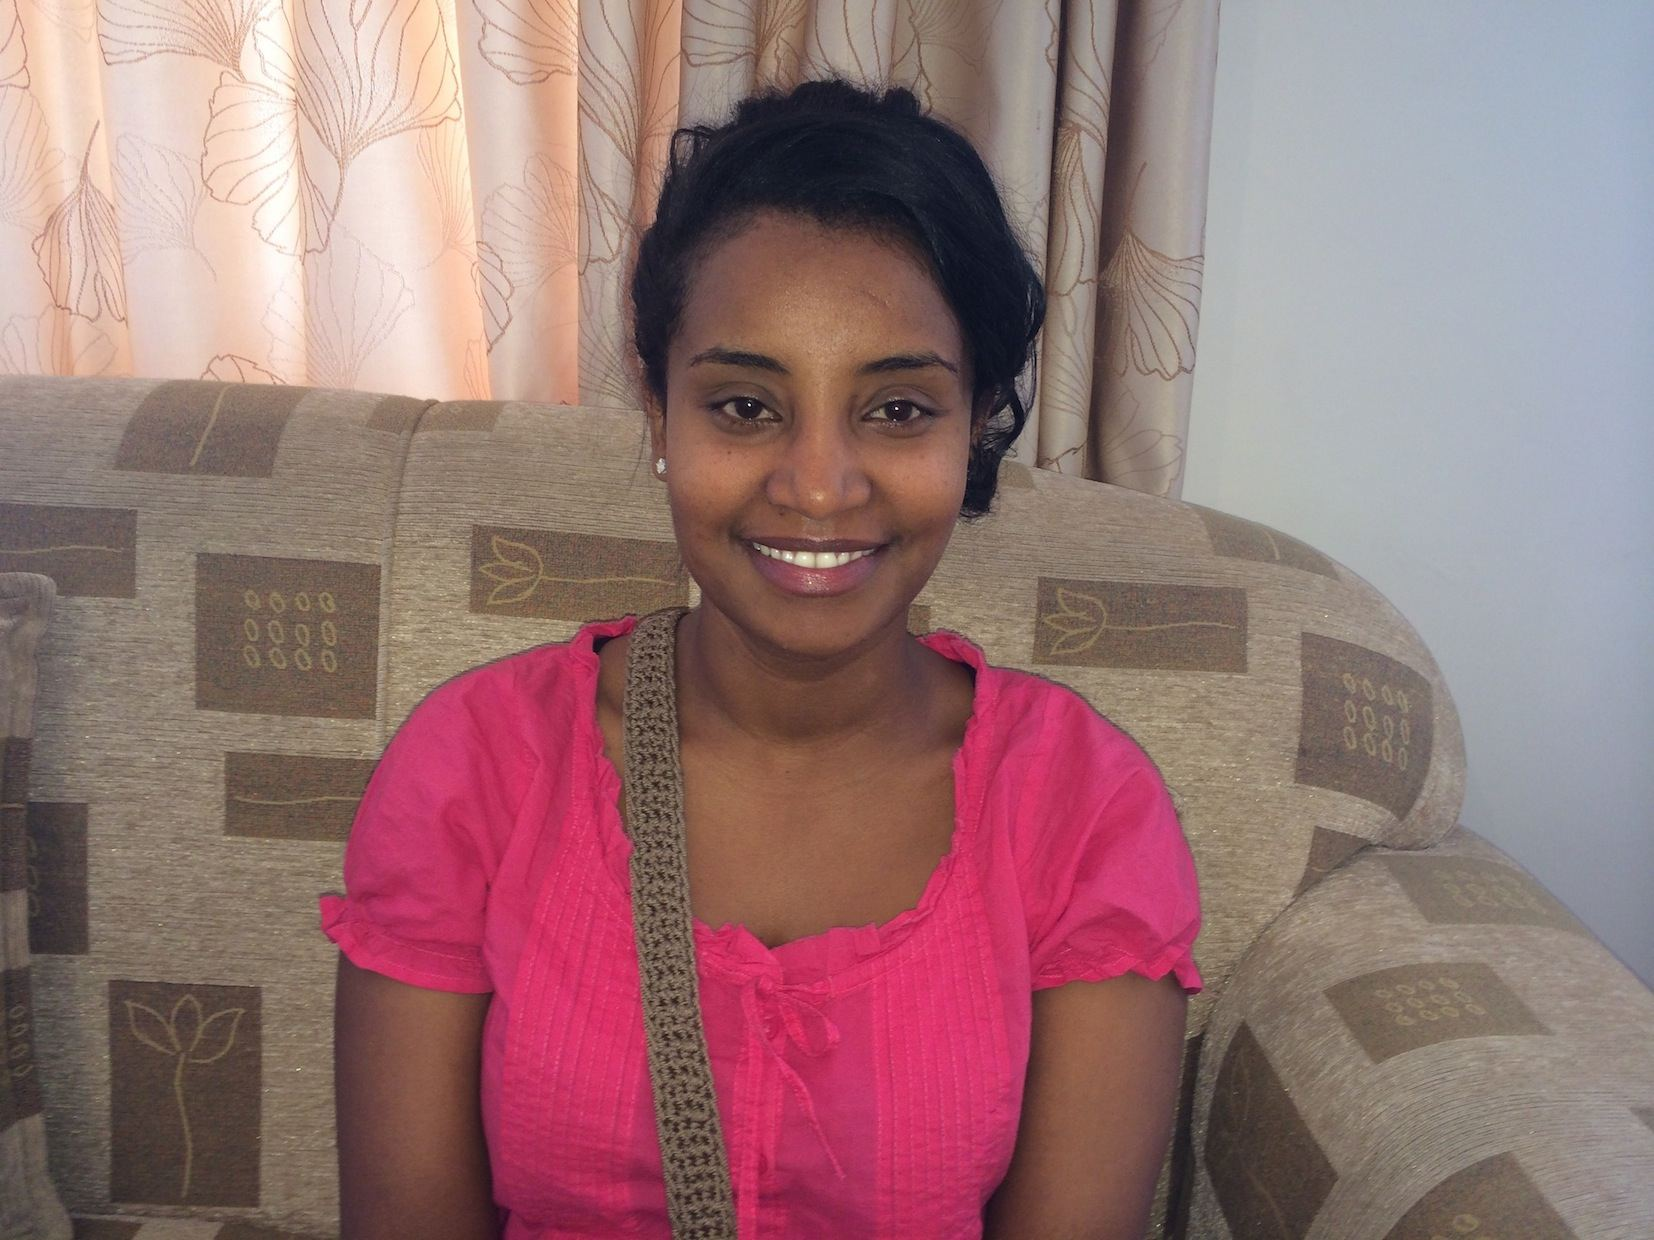 Sara's story makes me angry about education failings in poorest countries